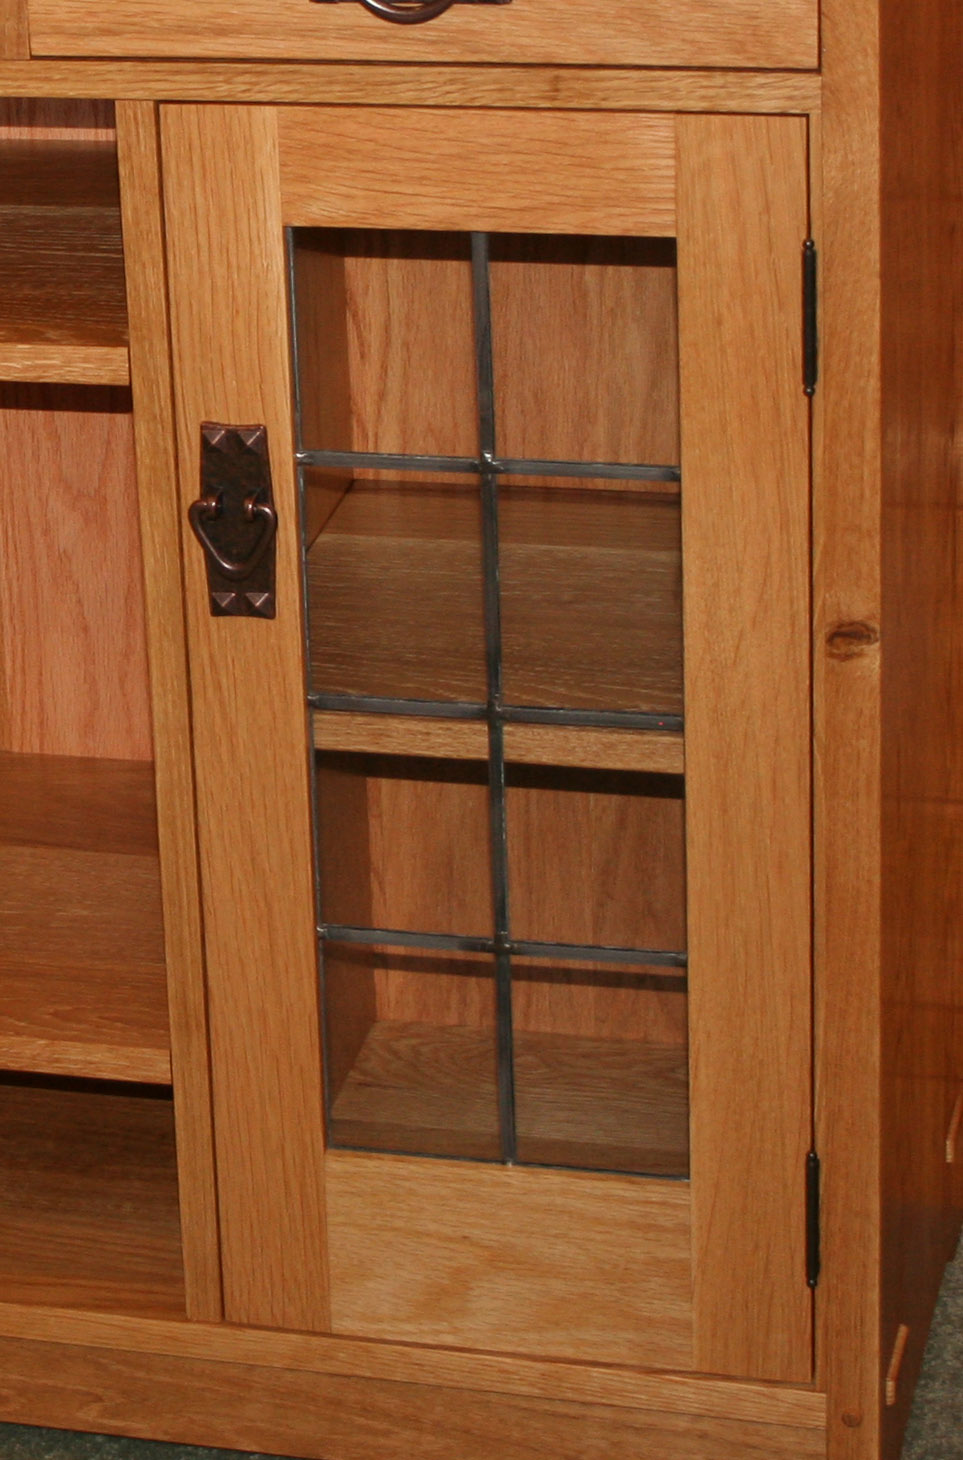 Heritage Lead glass Cabinet  /& Kitchen  door inserts